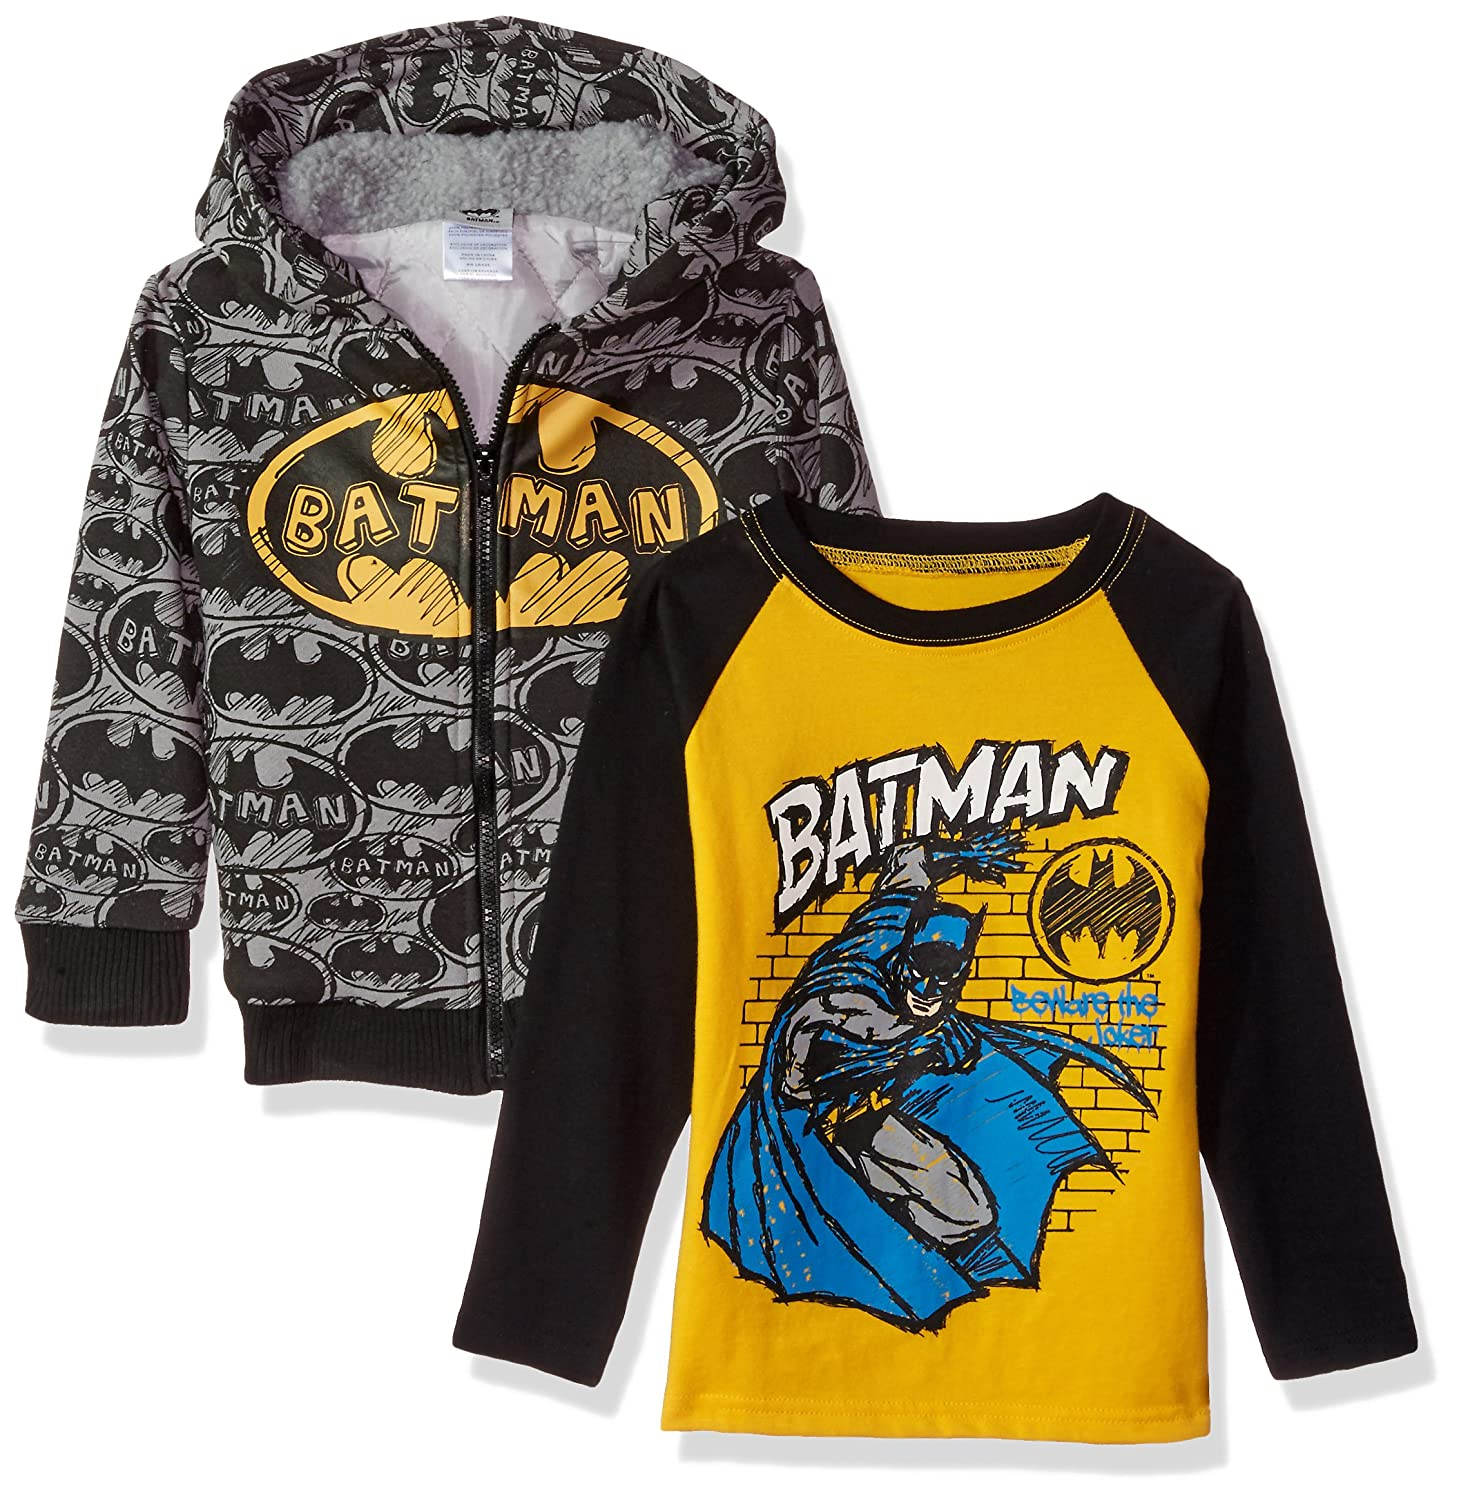 Warner Brothers Boys' 2 Piece Batman Sherpa Jacket Set with Tee Black 2t 7wb6503